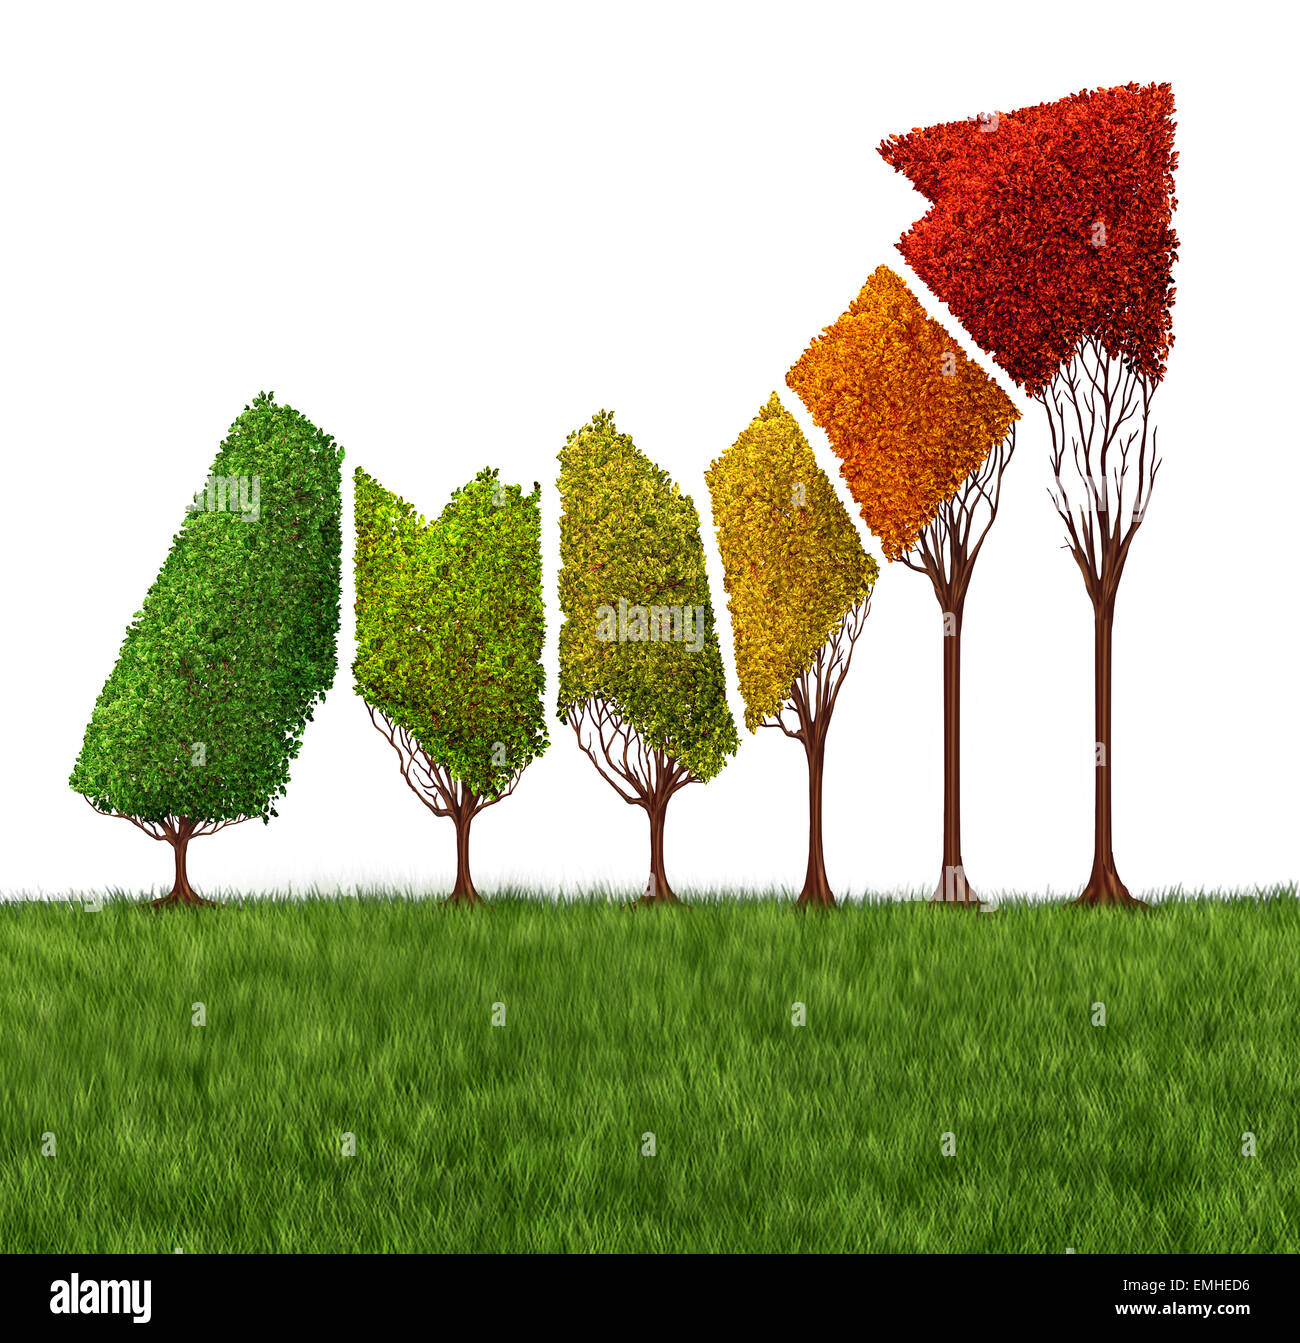 Annual financial report concept and market maturity symbol as a group of trees shaped as a profitable stock market - Stock Image